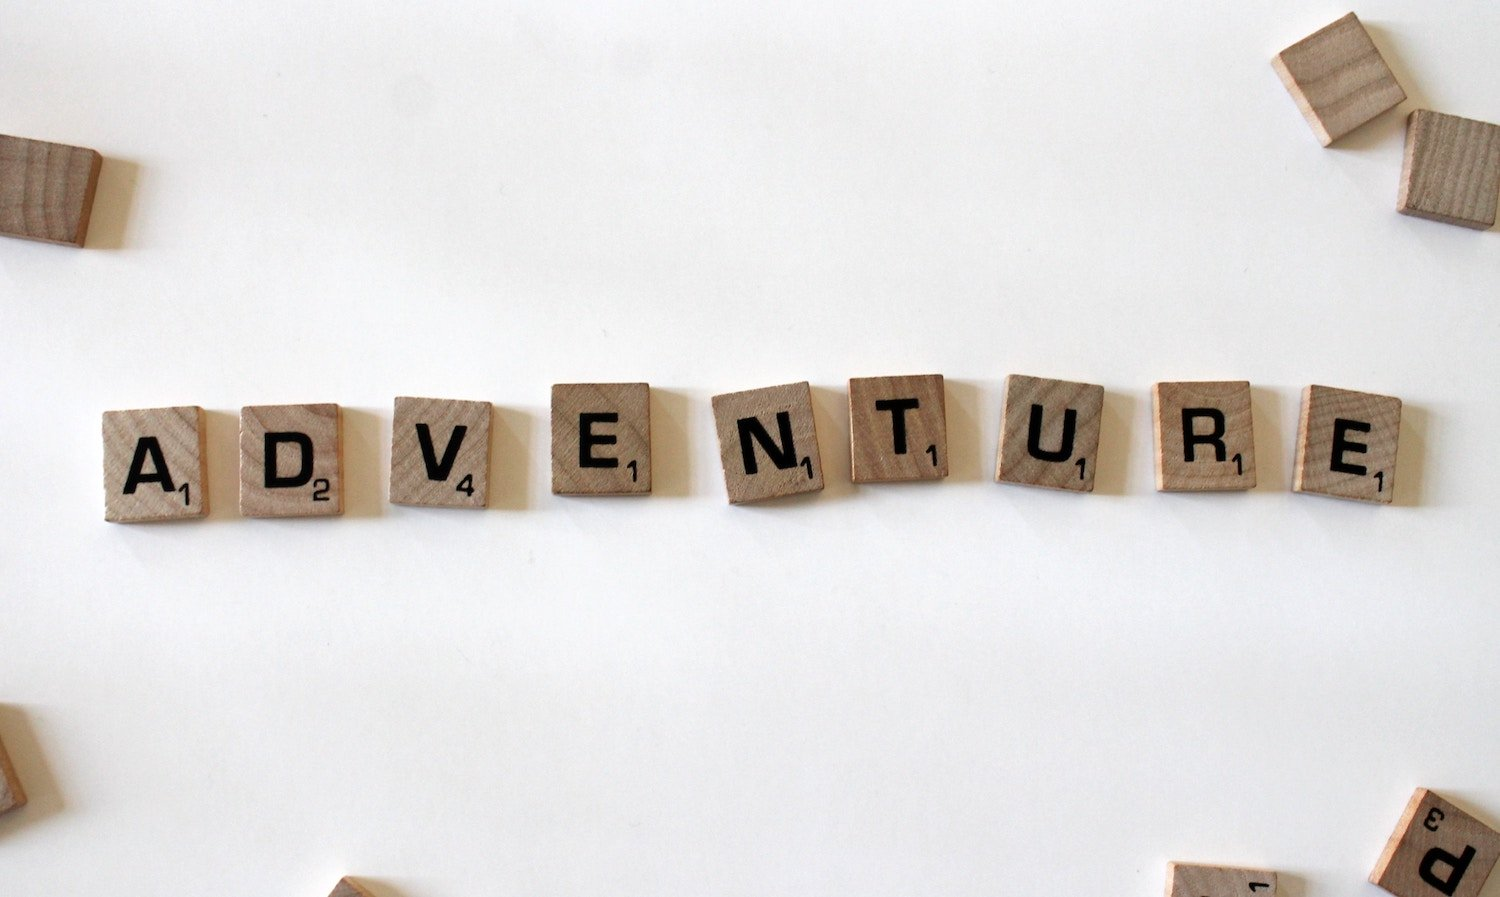 scrabble tiles spelling out the word adventure